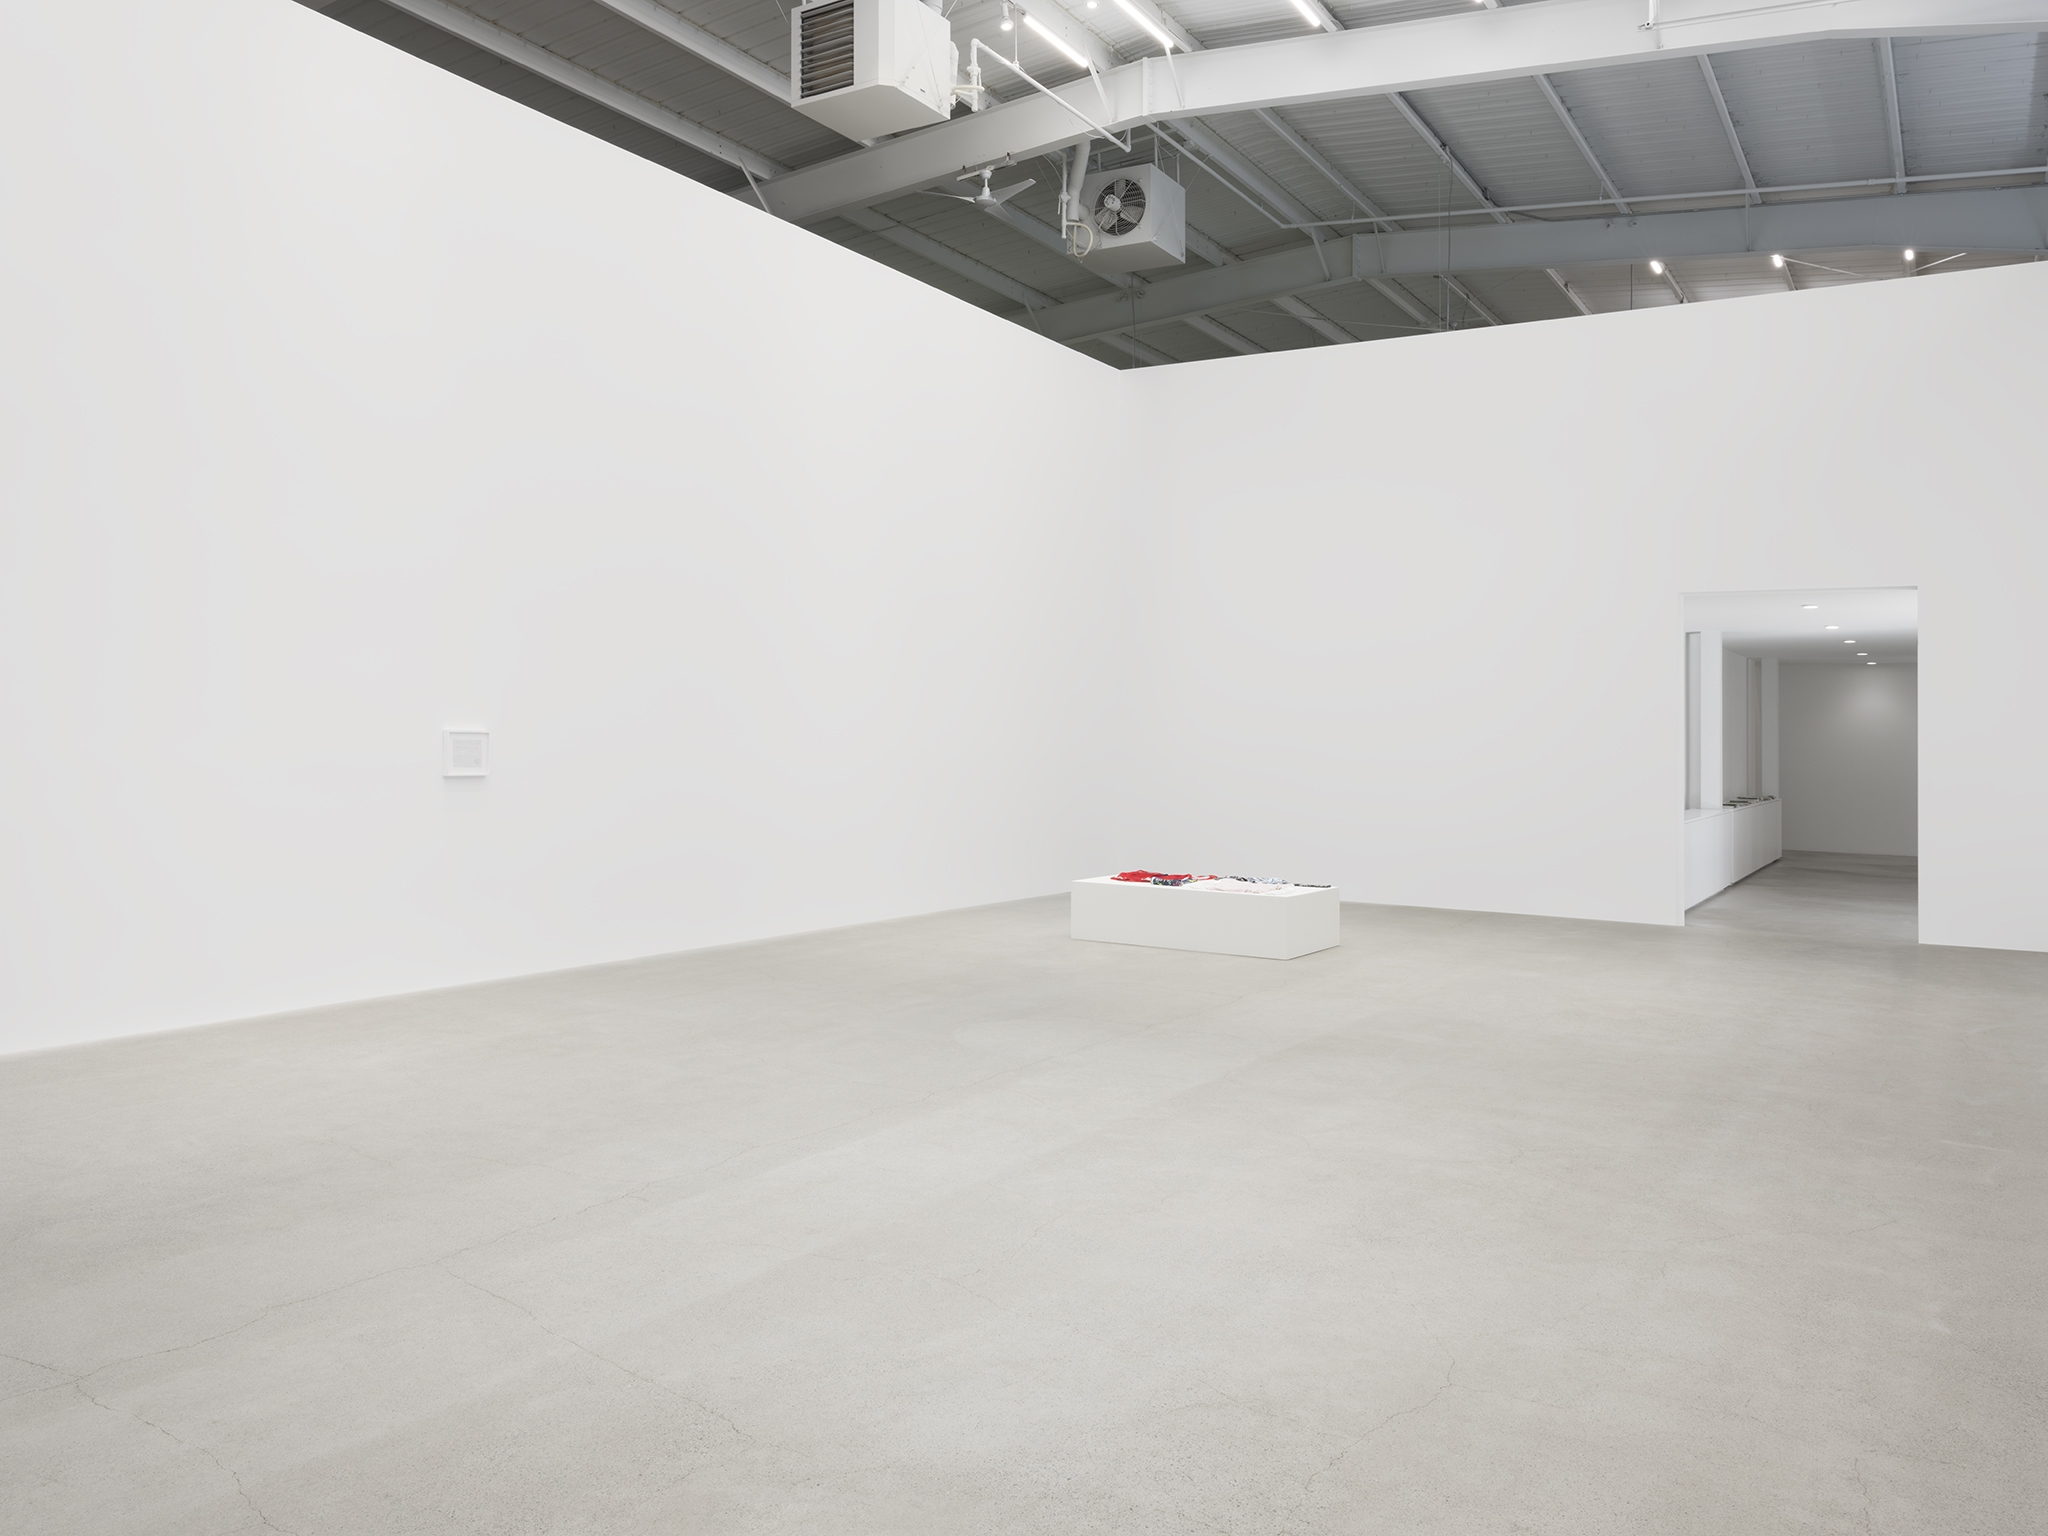 ​On Kawara, Tanya Lukin Linklater, installation view, Unexplained Parade, Catriona Jeffries, Vancouver, April 27, 2019​​​ by